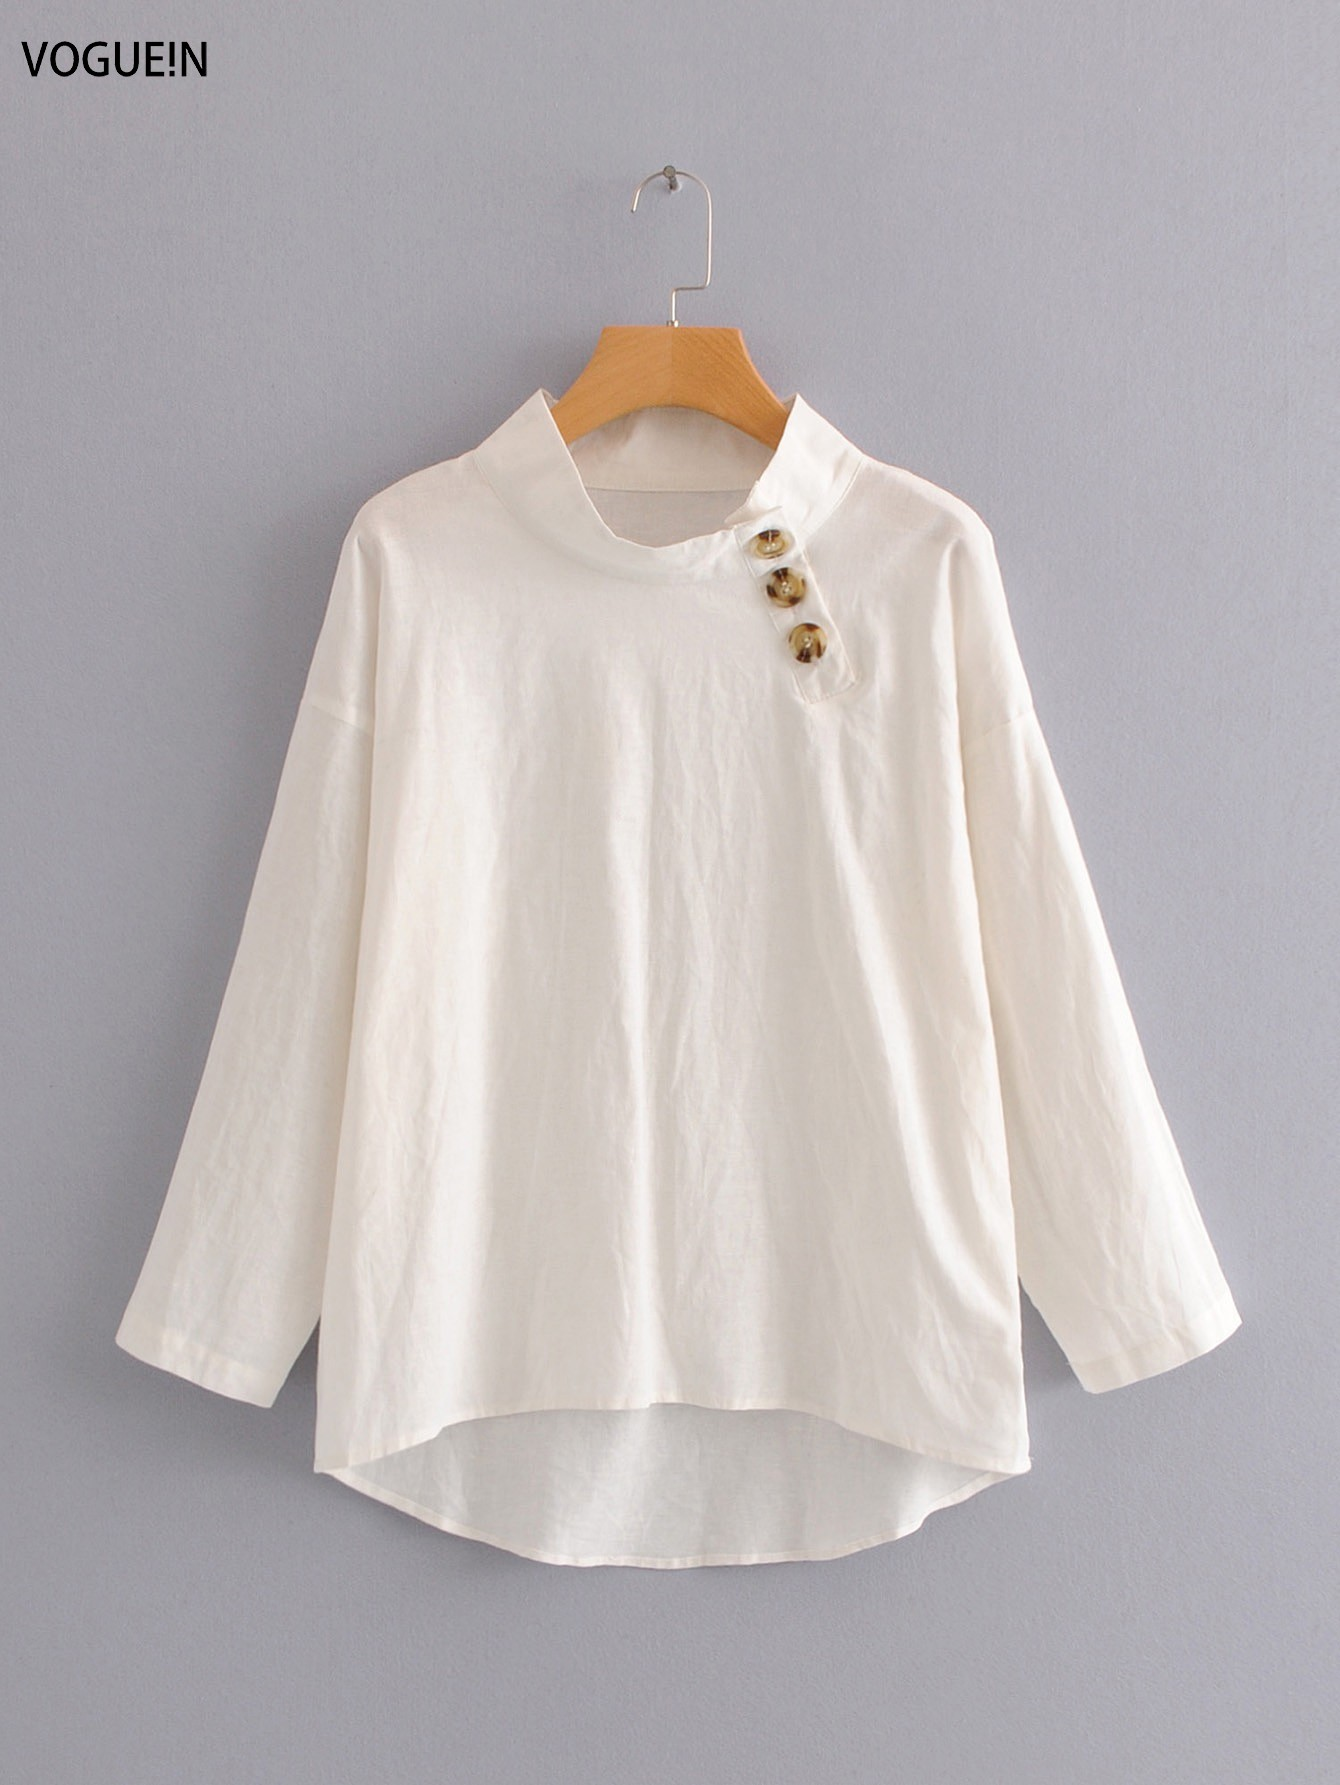 VOGUEIN New Womens Buttons Decoration Long Sleeve Pullover   Blouse     Shirt   Tops Wholesale